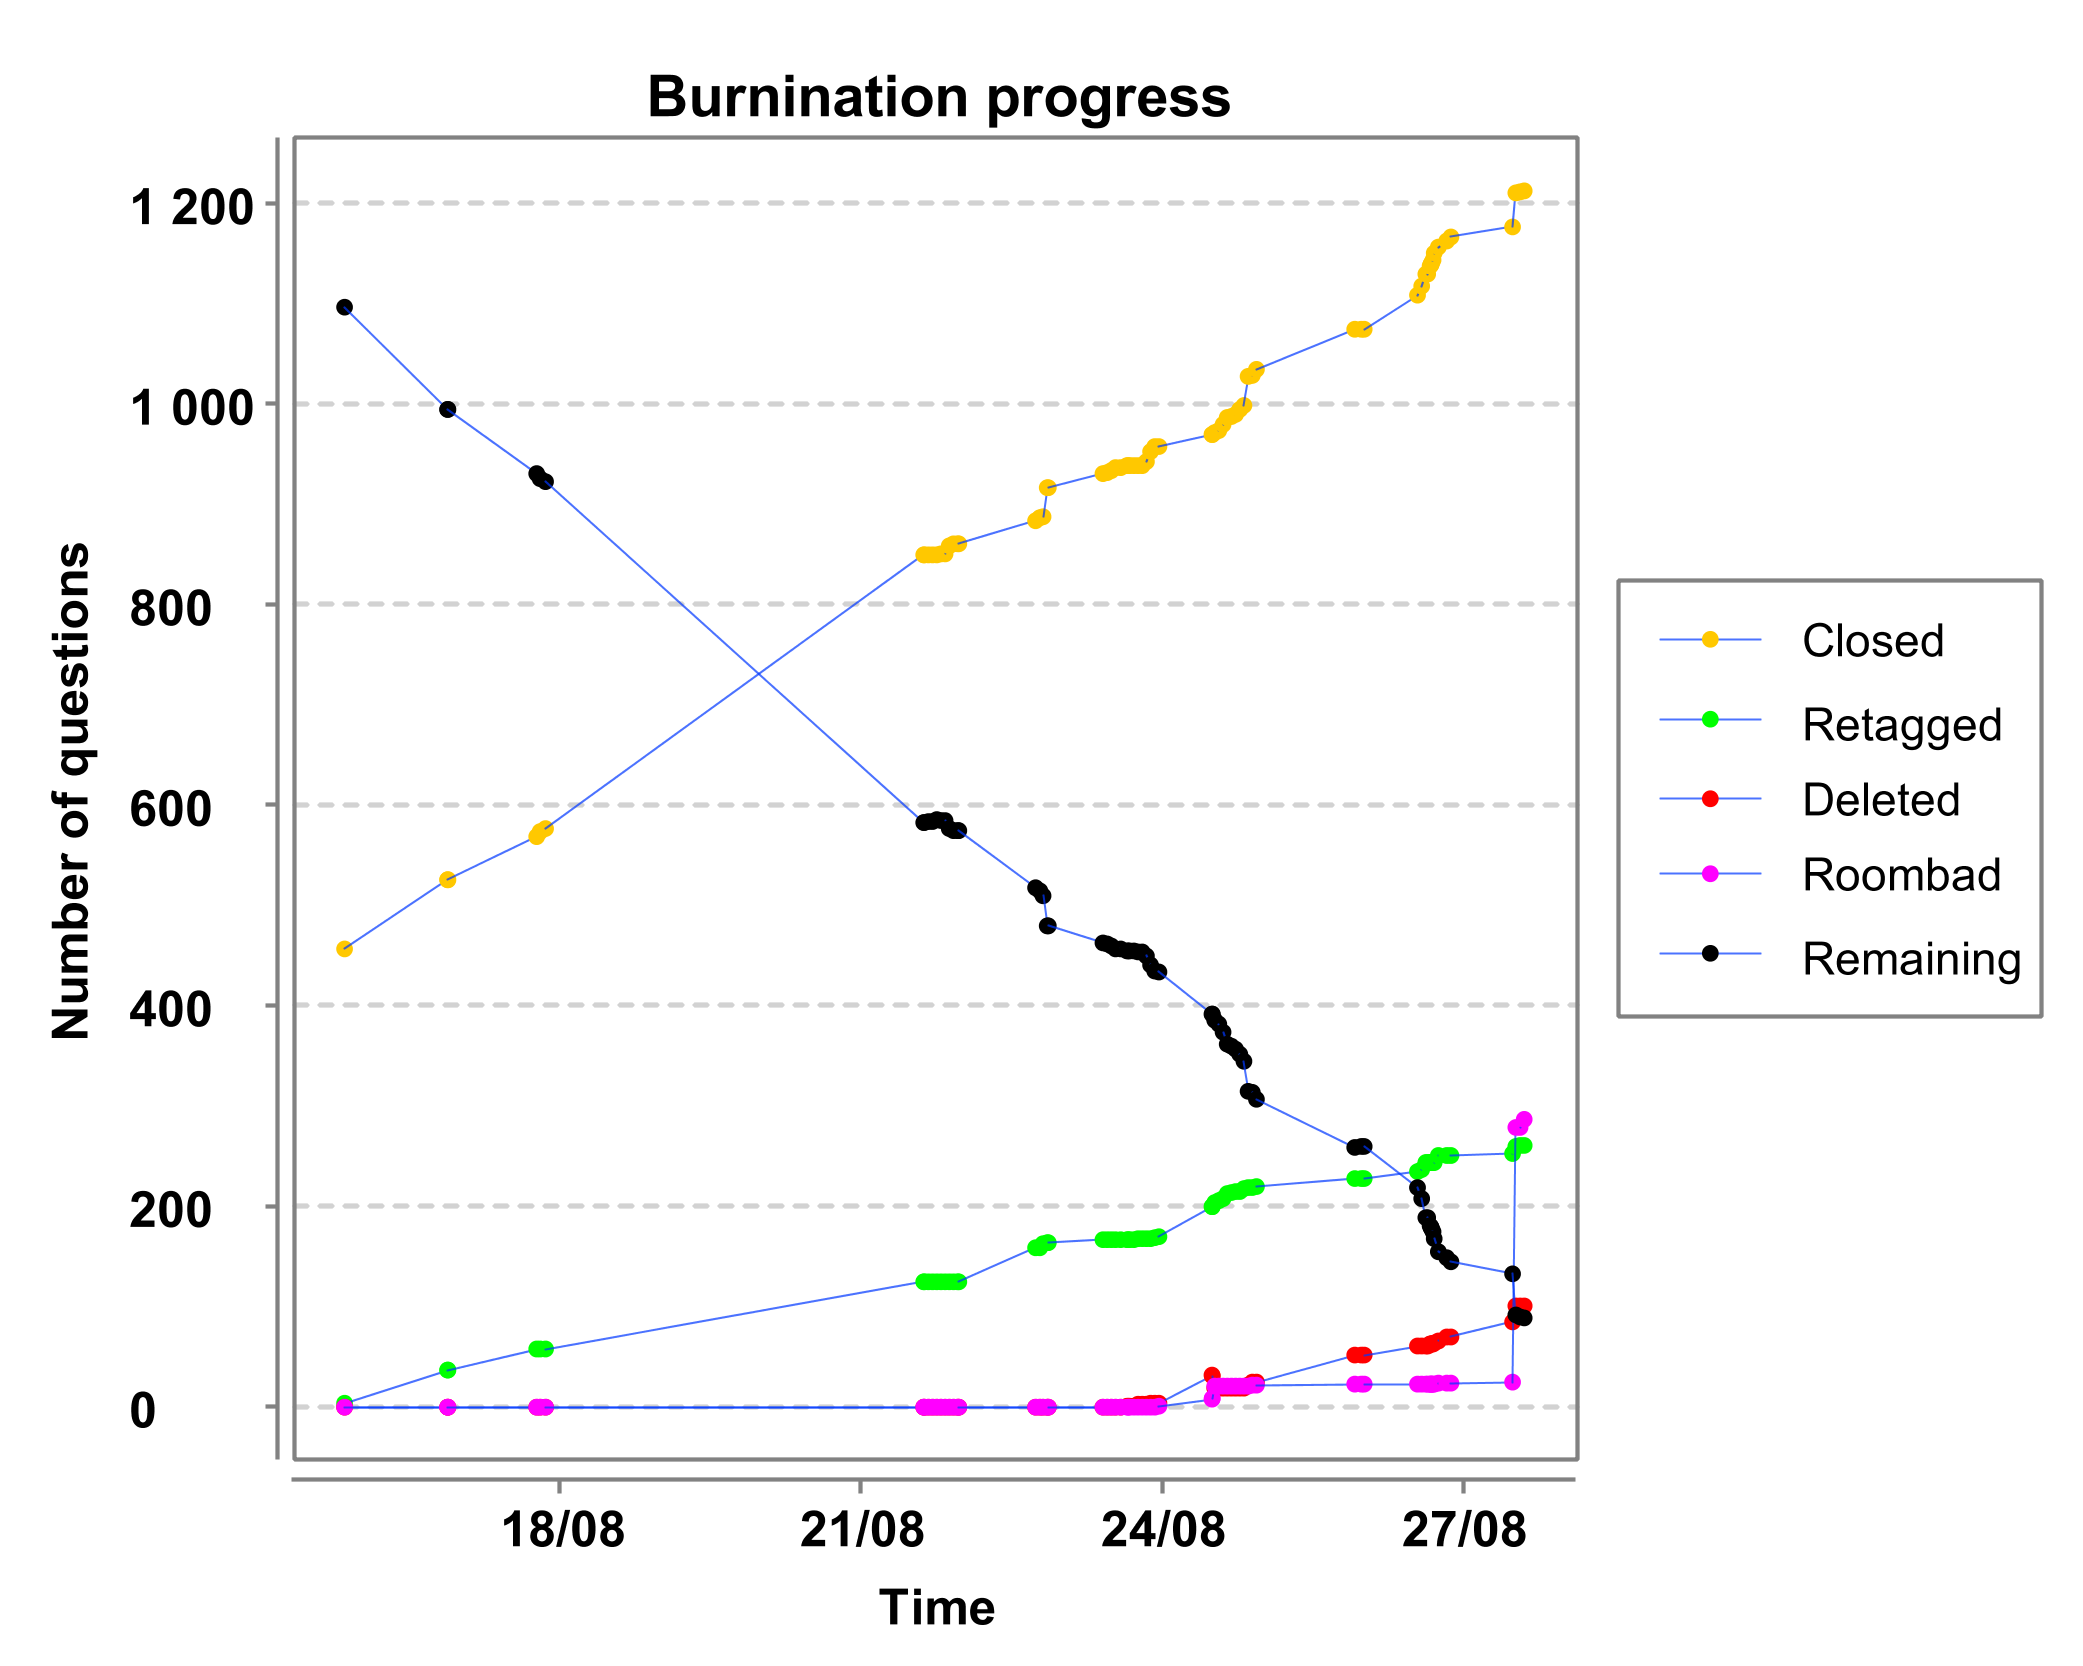 Burnination progress